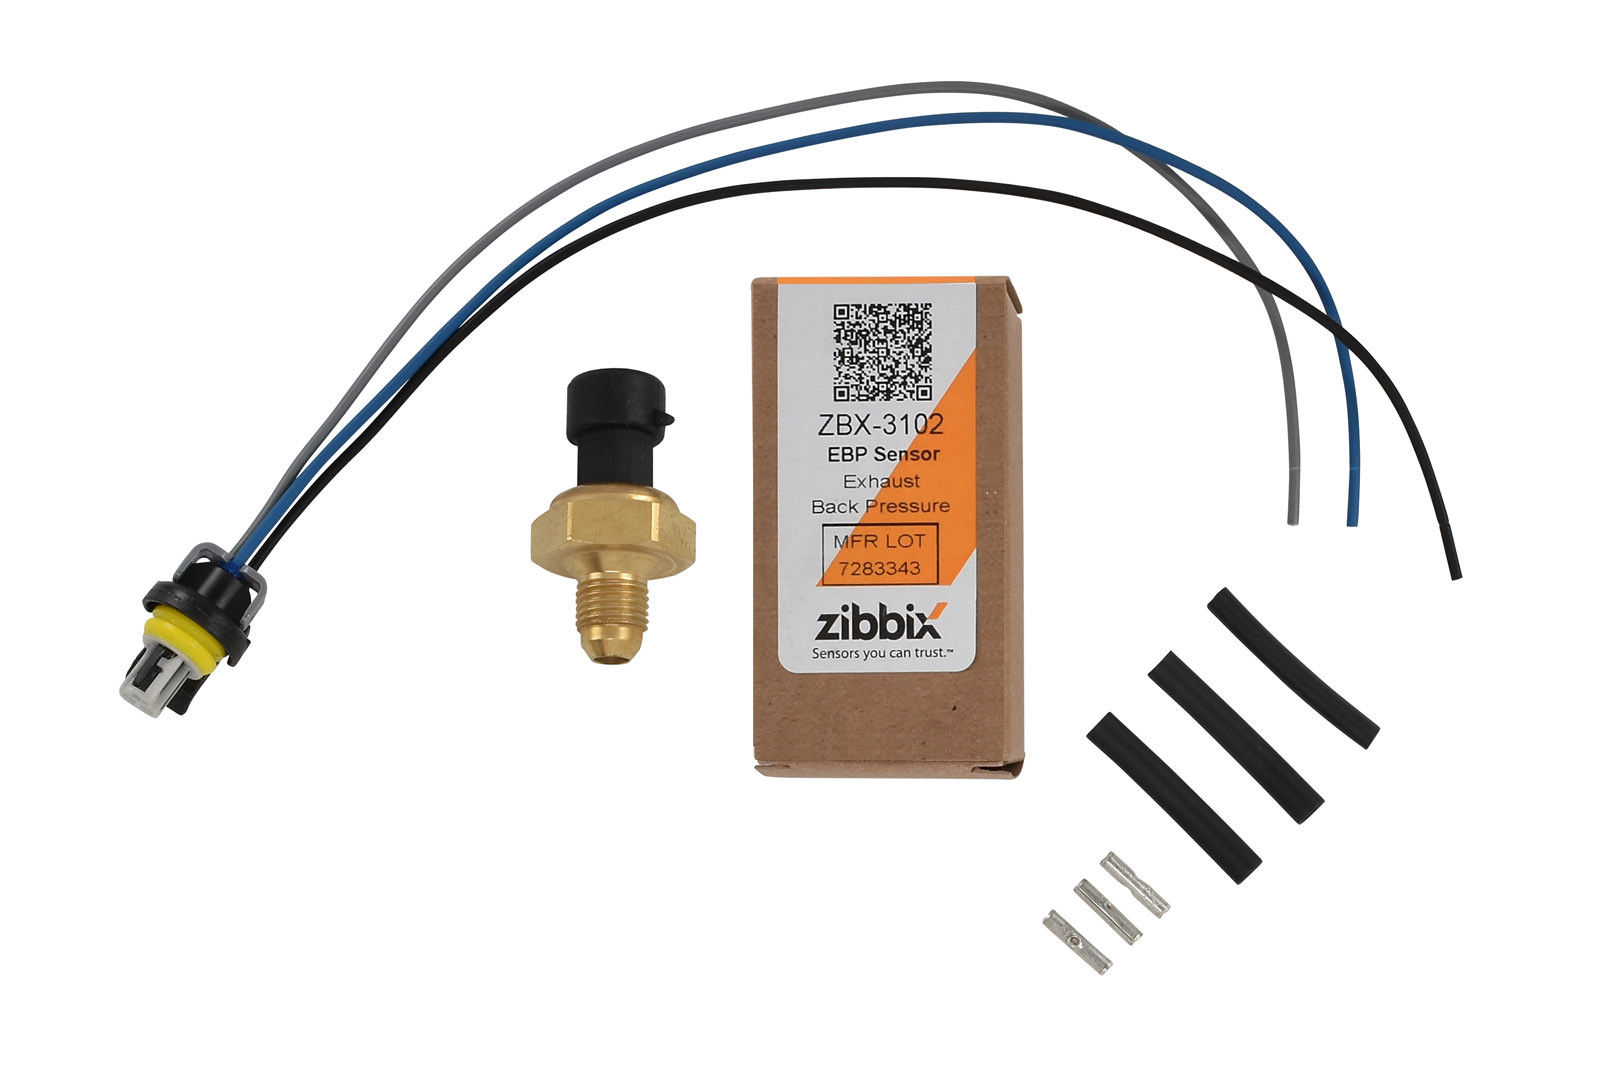 Zibbix ZBX-3102-PK5 EBP Exhaust Back Pressure Sensor Pigtail Kit For 05.5-10 6.0L Ford Powerstroke Diesel